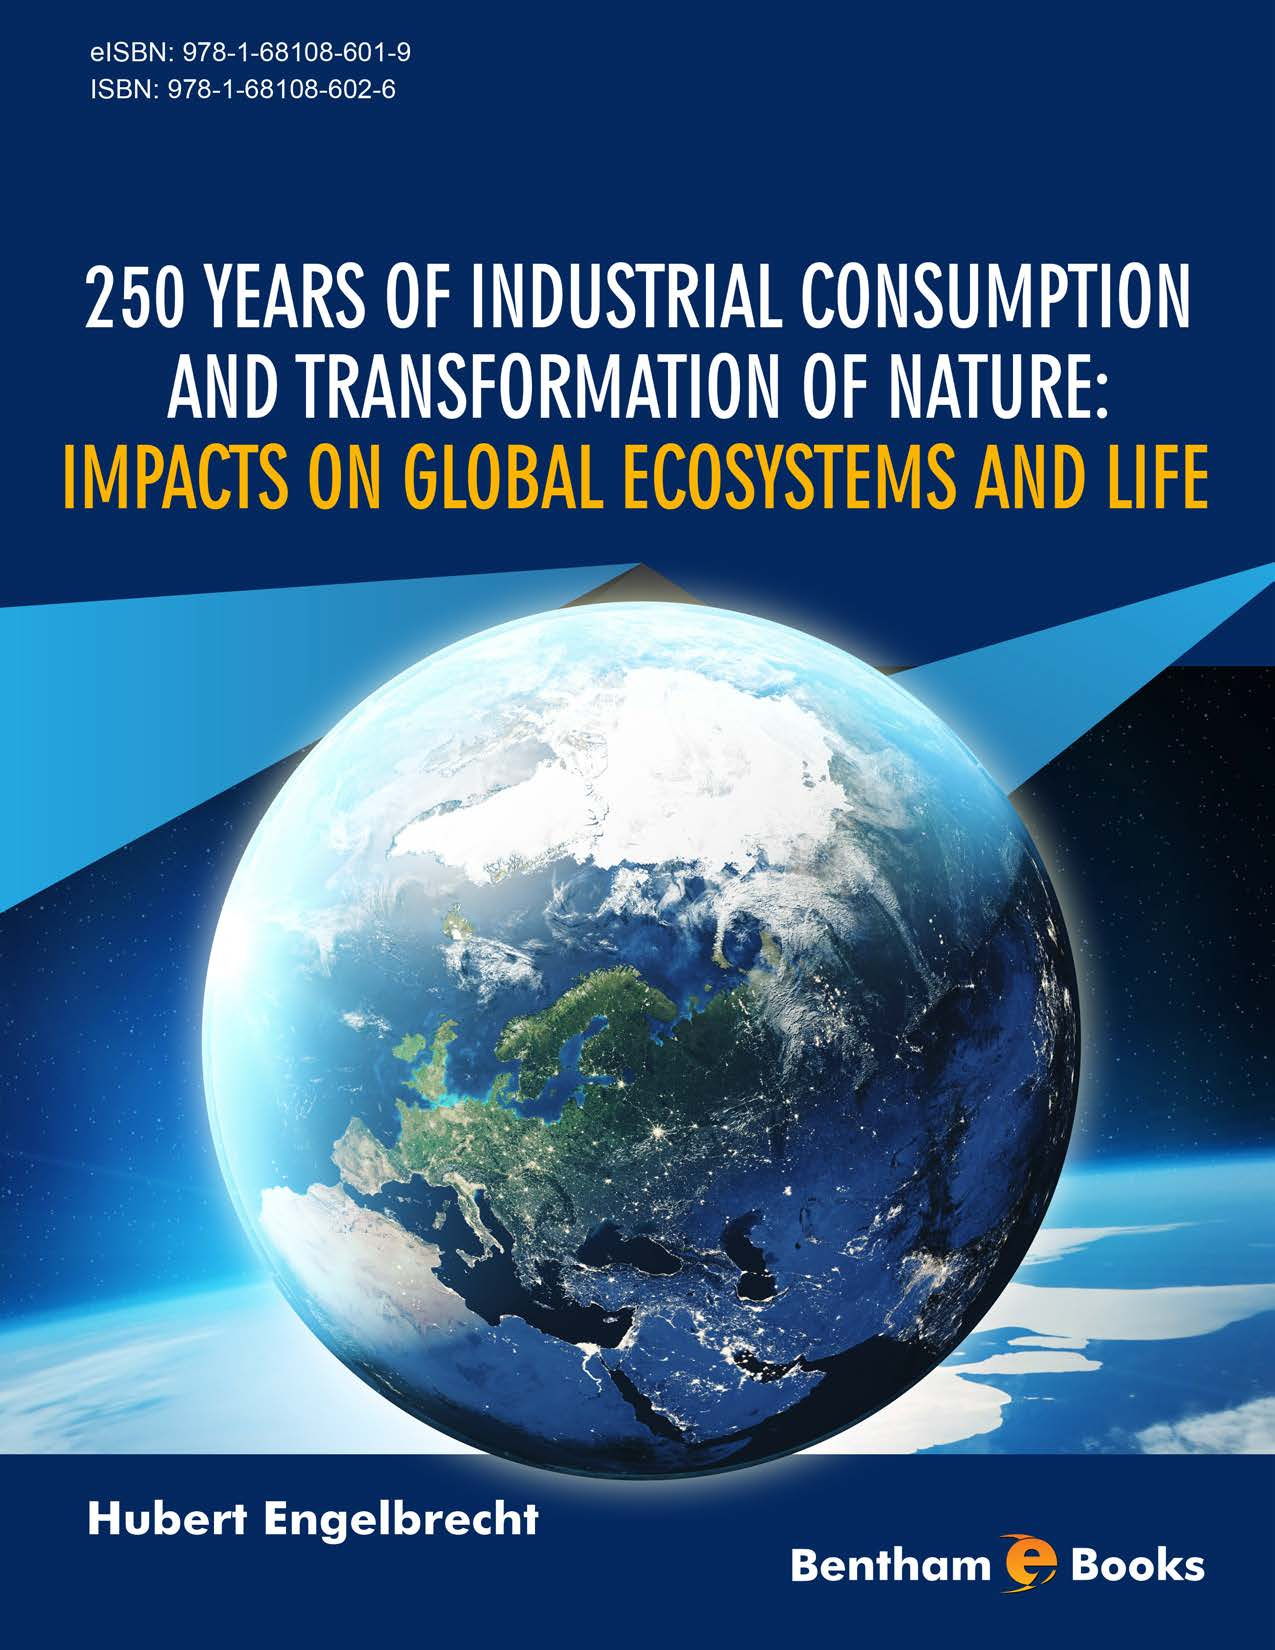 250 Years of Industrial Consumption and Transformation of Nature: Impacts on Global Ecosystems and Life